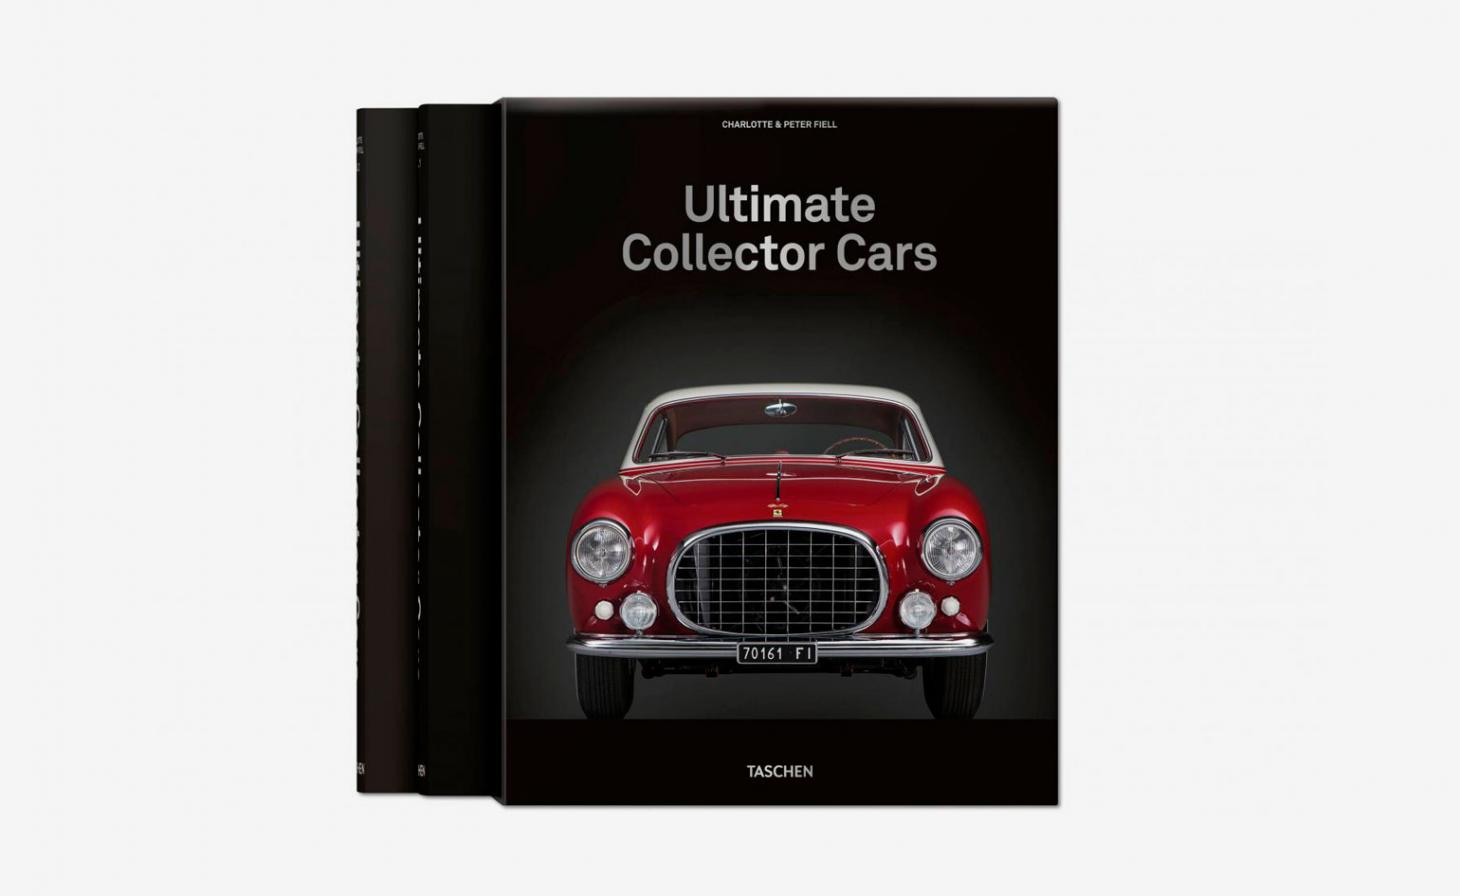 The book cover of Ultimate Collectors Cars, published by Taschen